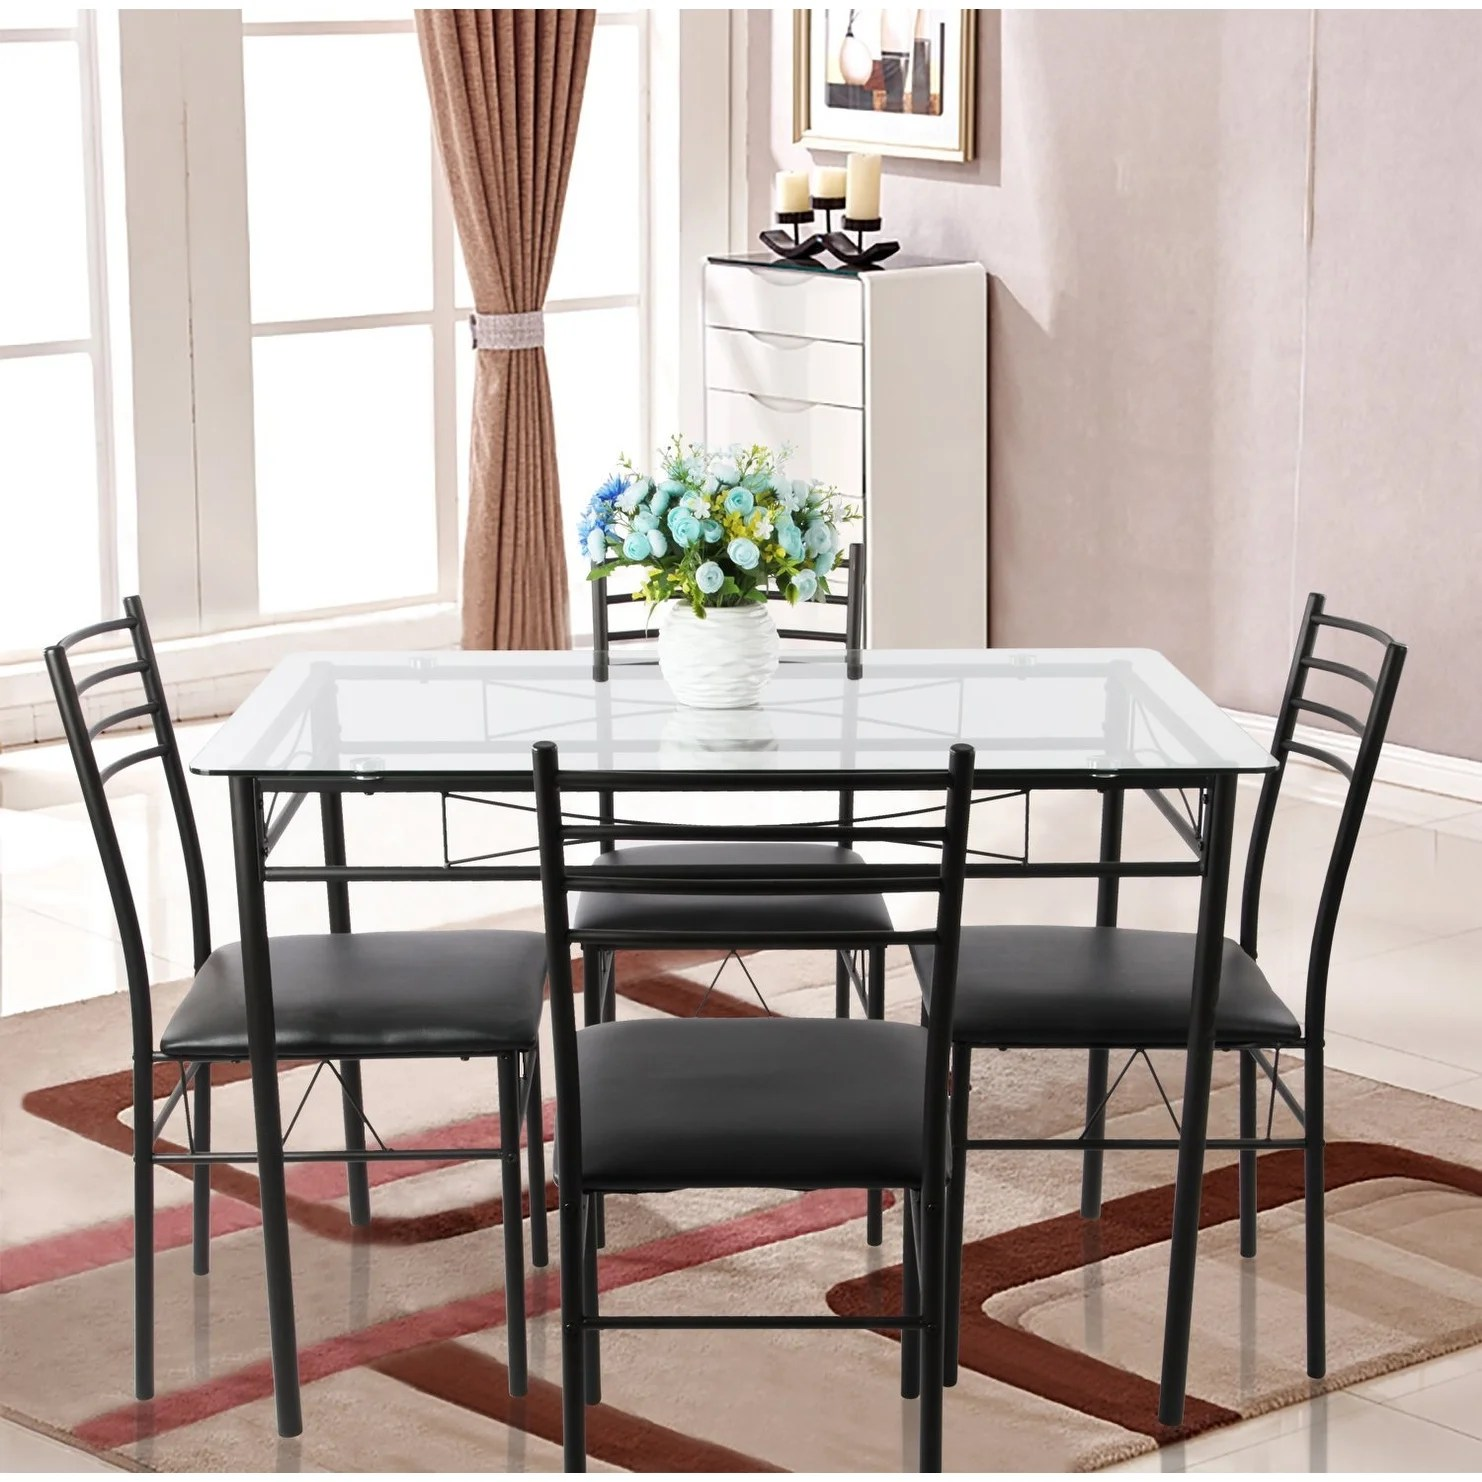 Glass Dining Table And Chairs Vecelo Glass Dining Table Sets With 4 Chairs Kitchen Table Sets